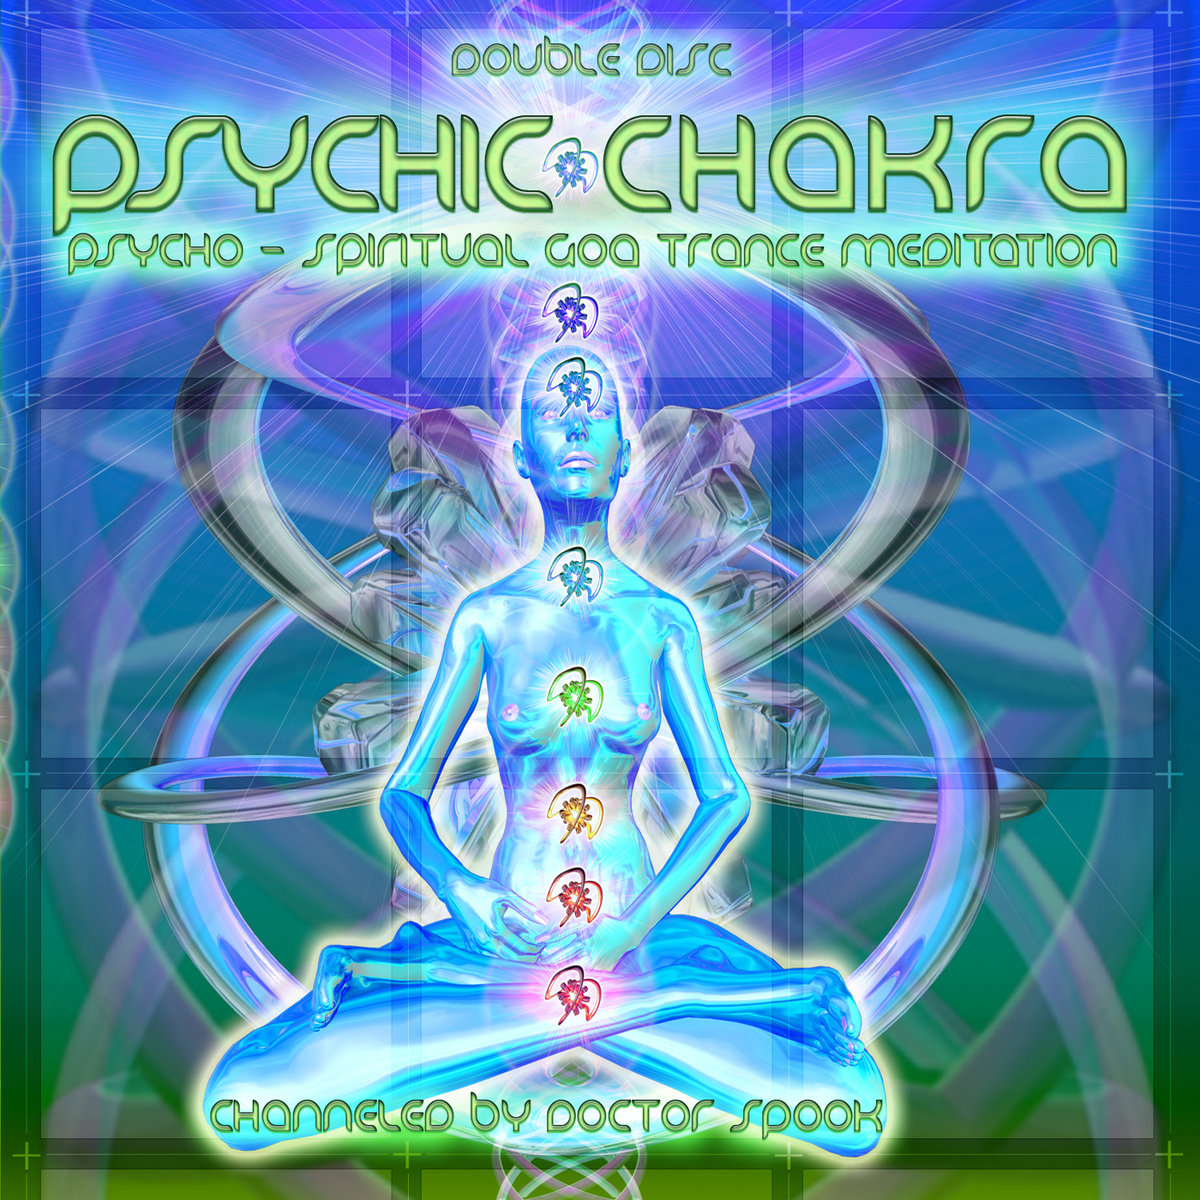 Mechanix - Digital Shmok @ 'Various Artists - Psychic Chakra (Channeled by Dr. Spook)' album (electronic, psychic chakra)